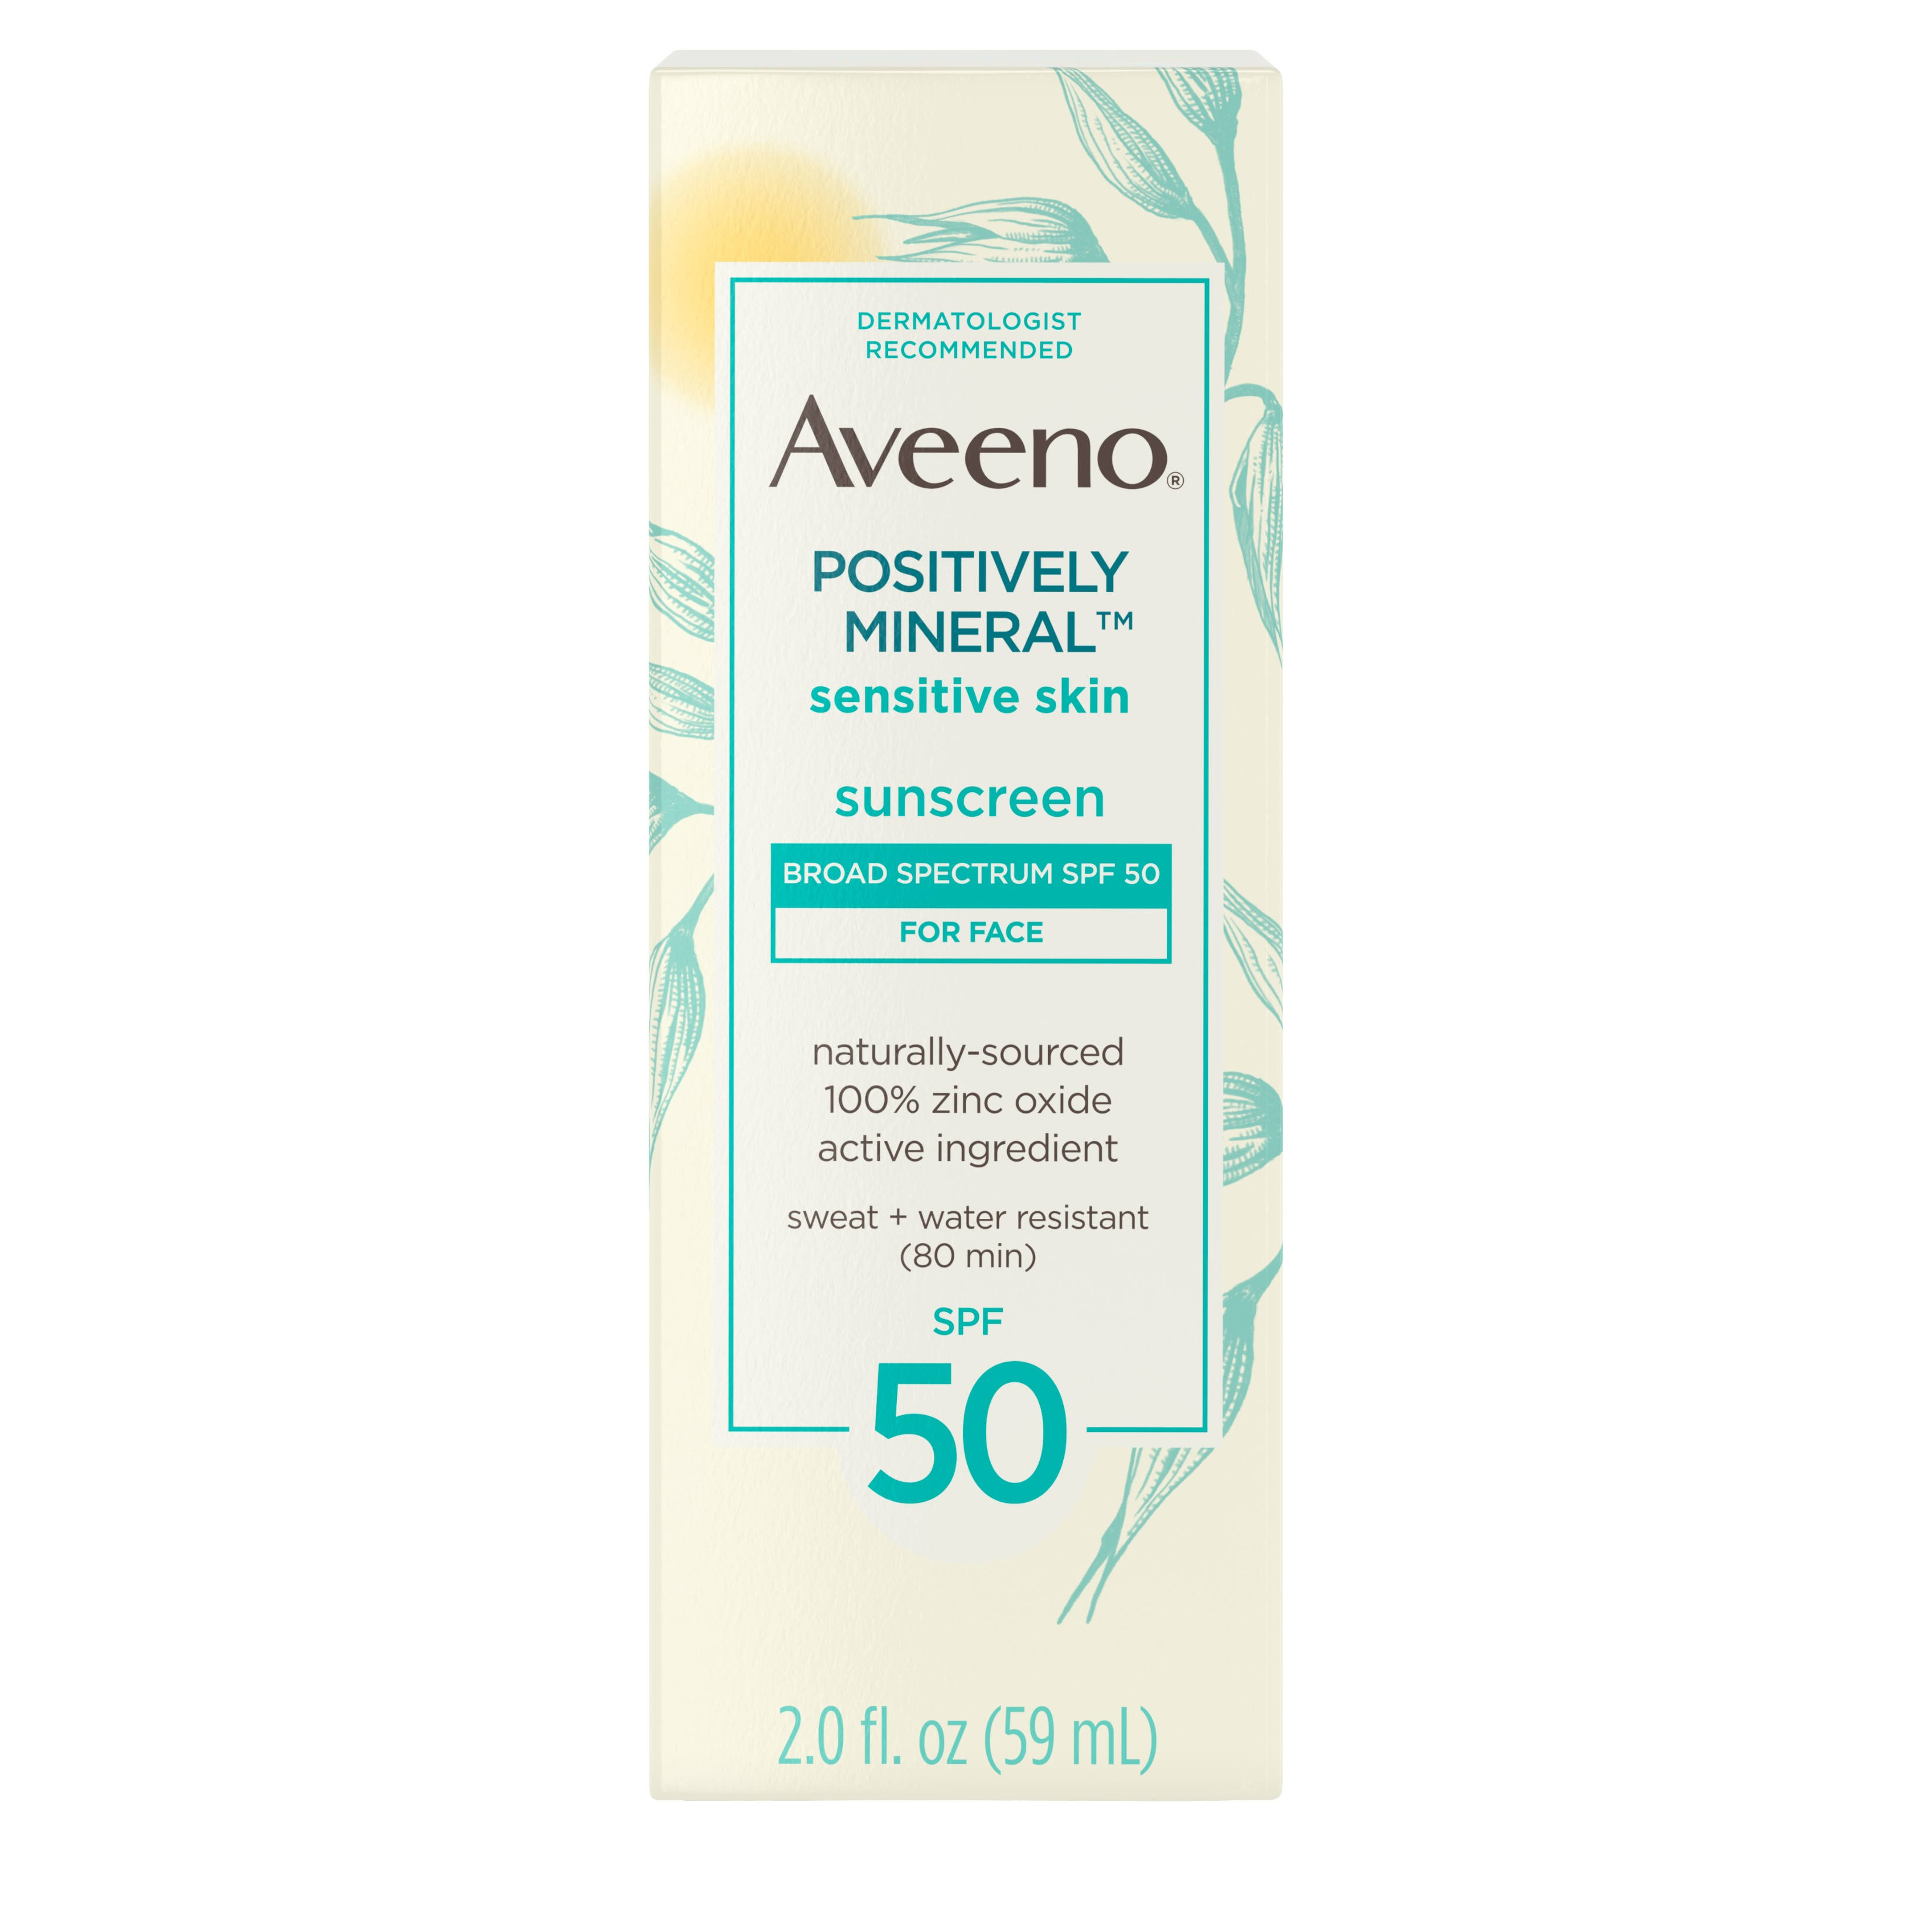 Aveeno Positively Mineral Sunscreen, For Face, Broad Spectrum SPF 50 - 2.0 fl oz